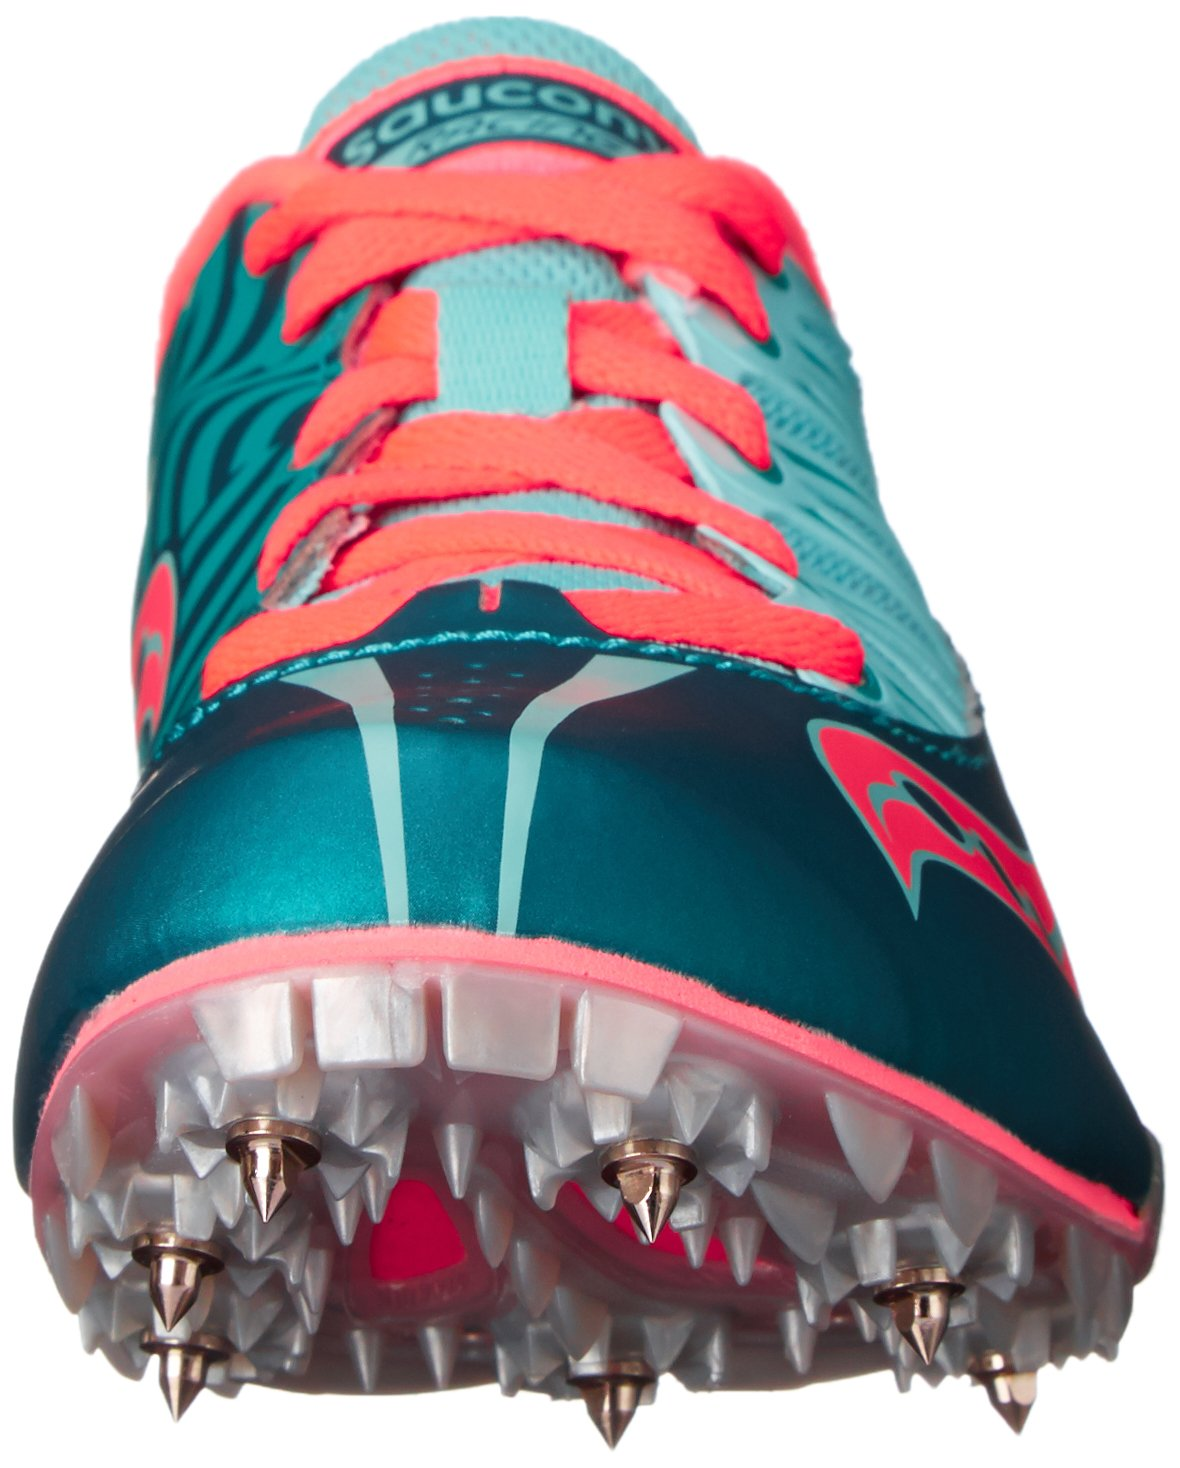 Saucony Women's Spitfire Spike Shoe, Teal/Coral, 7 M US by Saucony (Image #4)